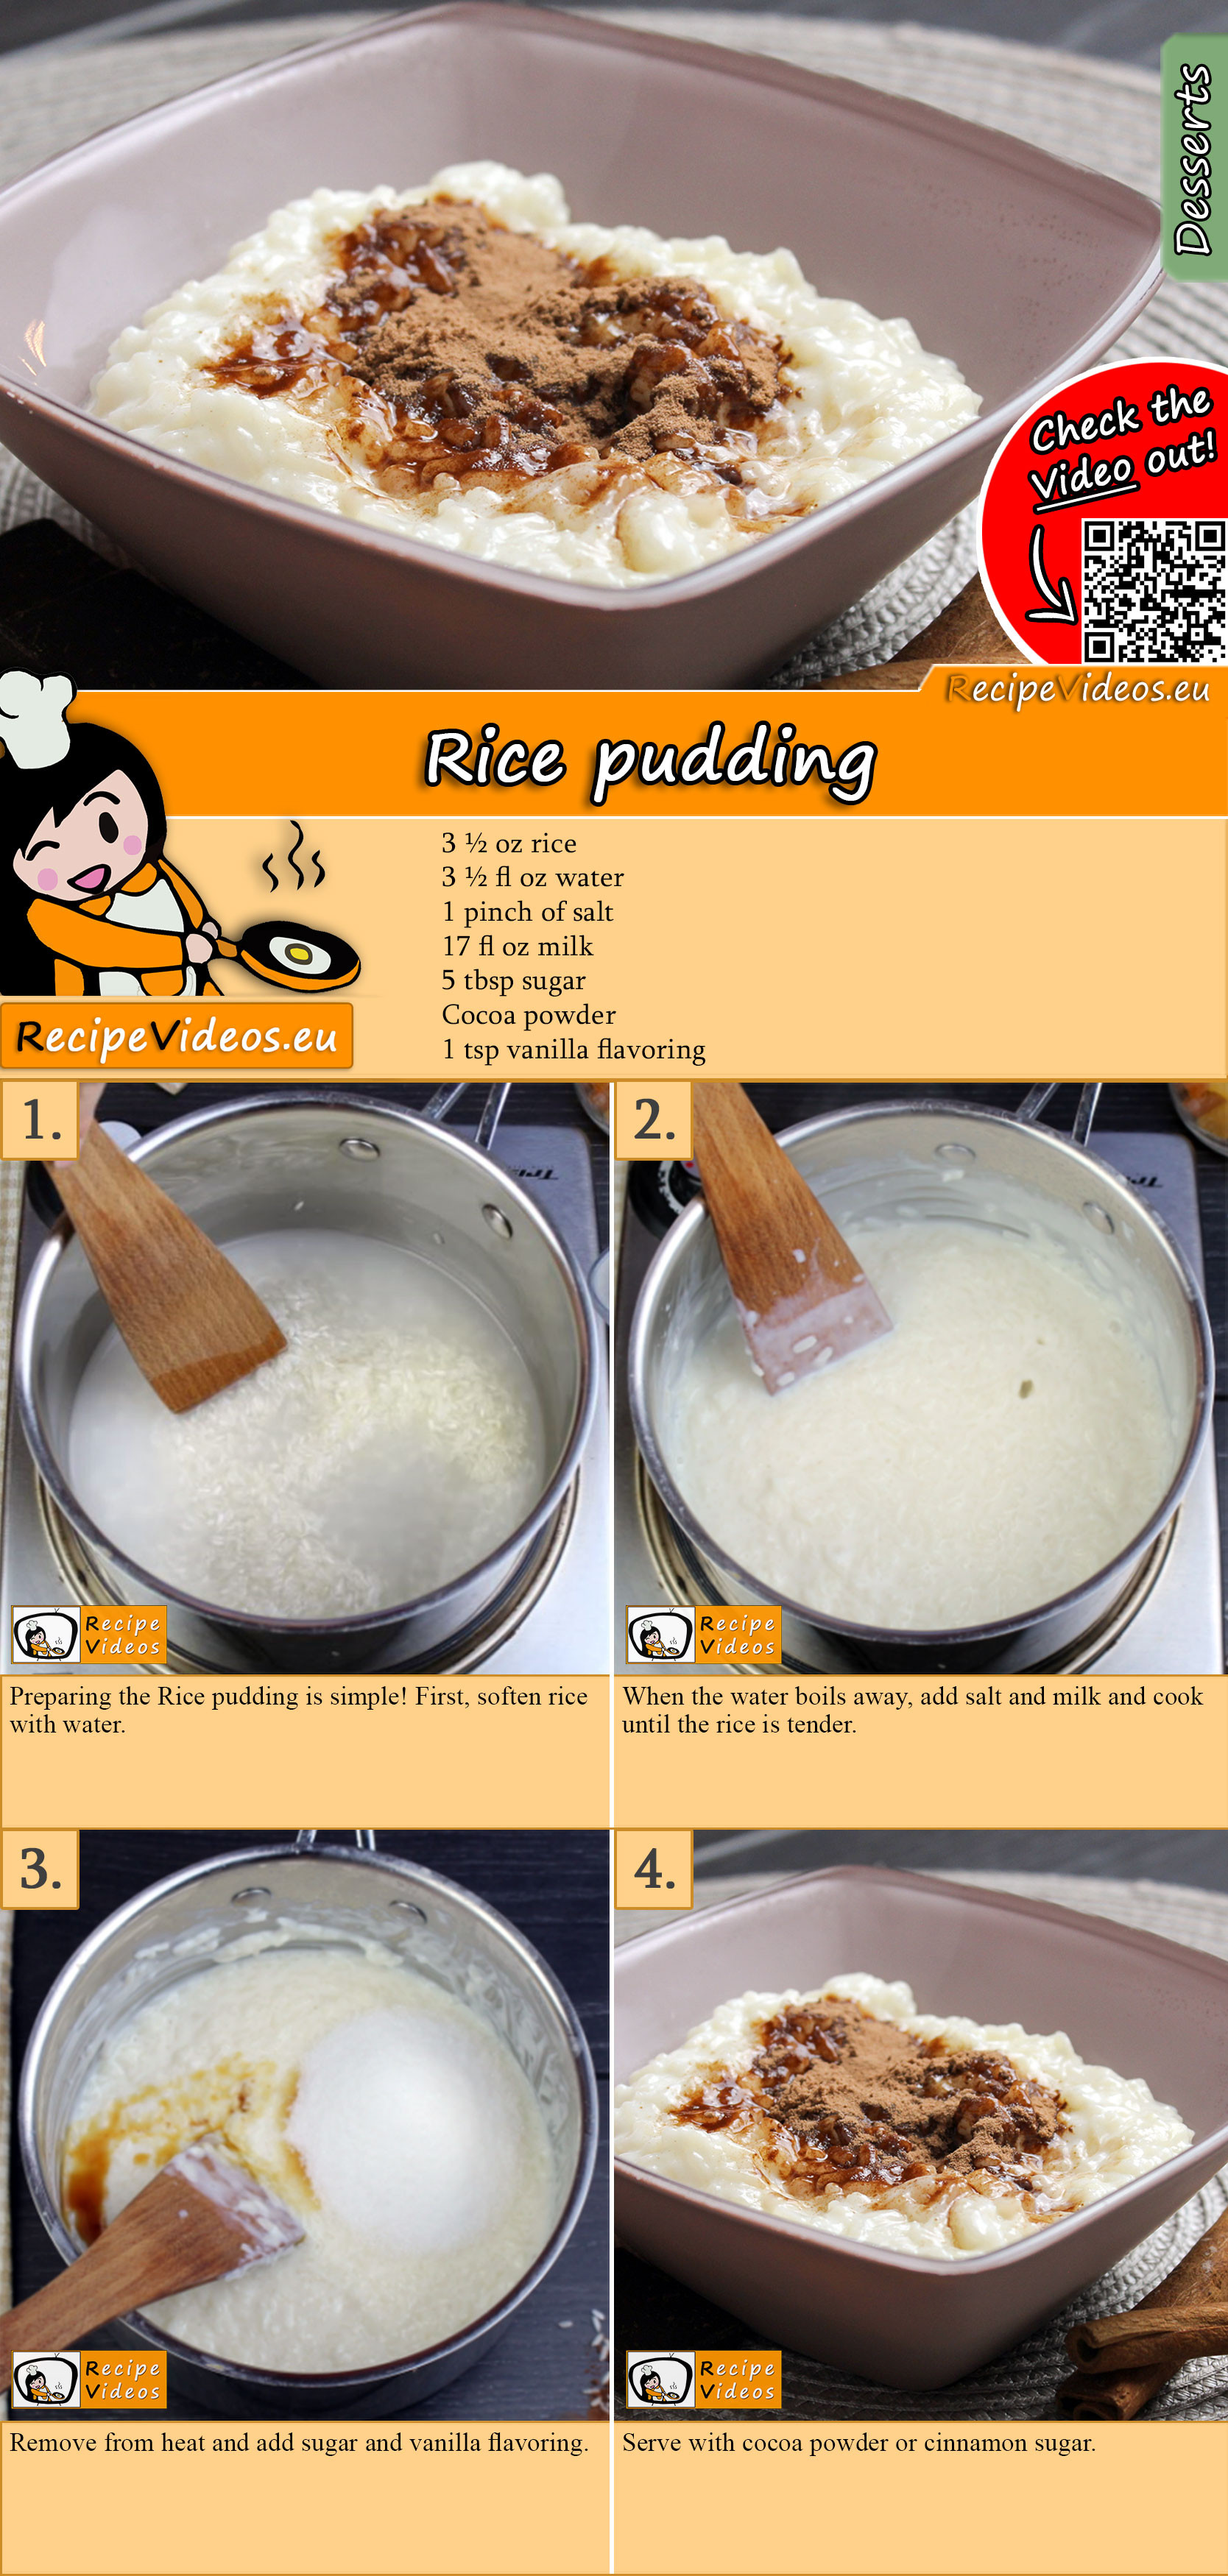 Rice pudding recipe with video